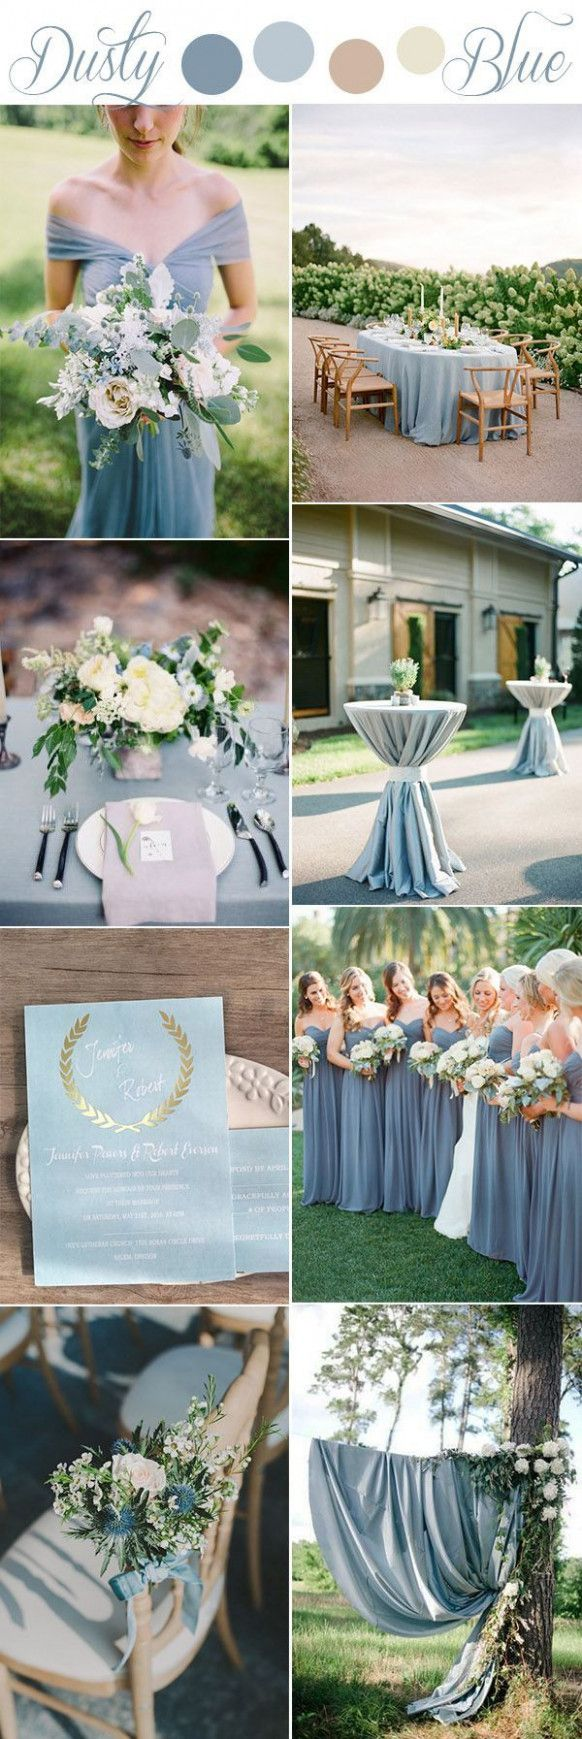 Beach wedding decorations elegant   Gorgeous Rustic Romantic And Elegant Wedding Ideas  wedding food